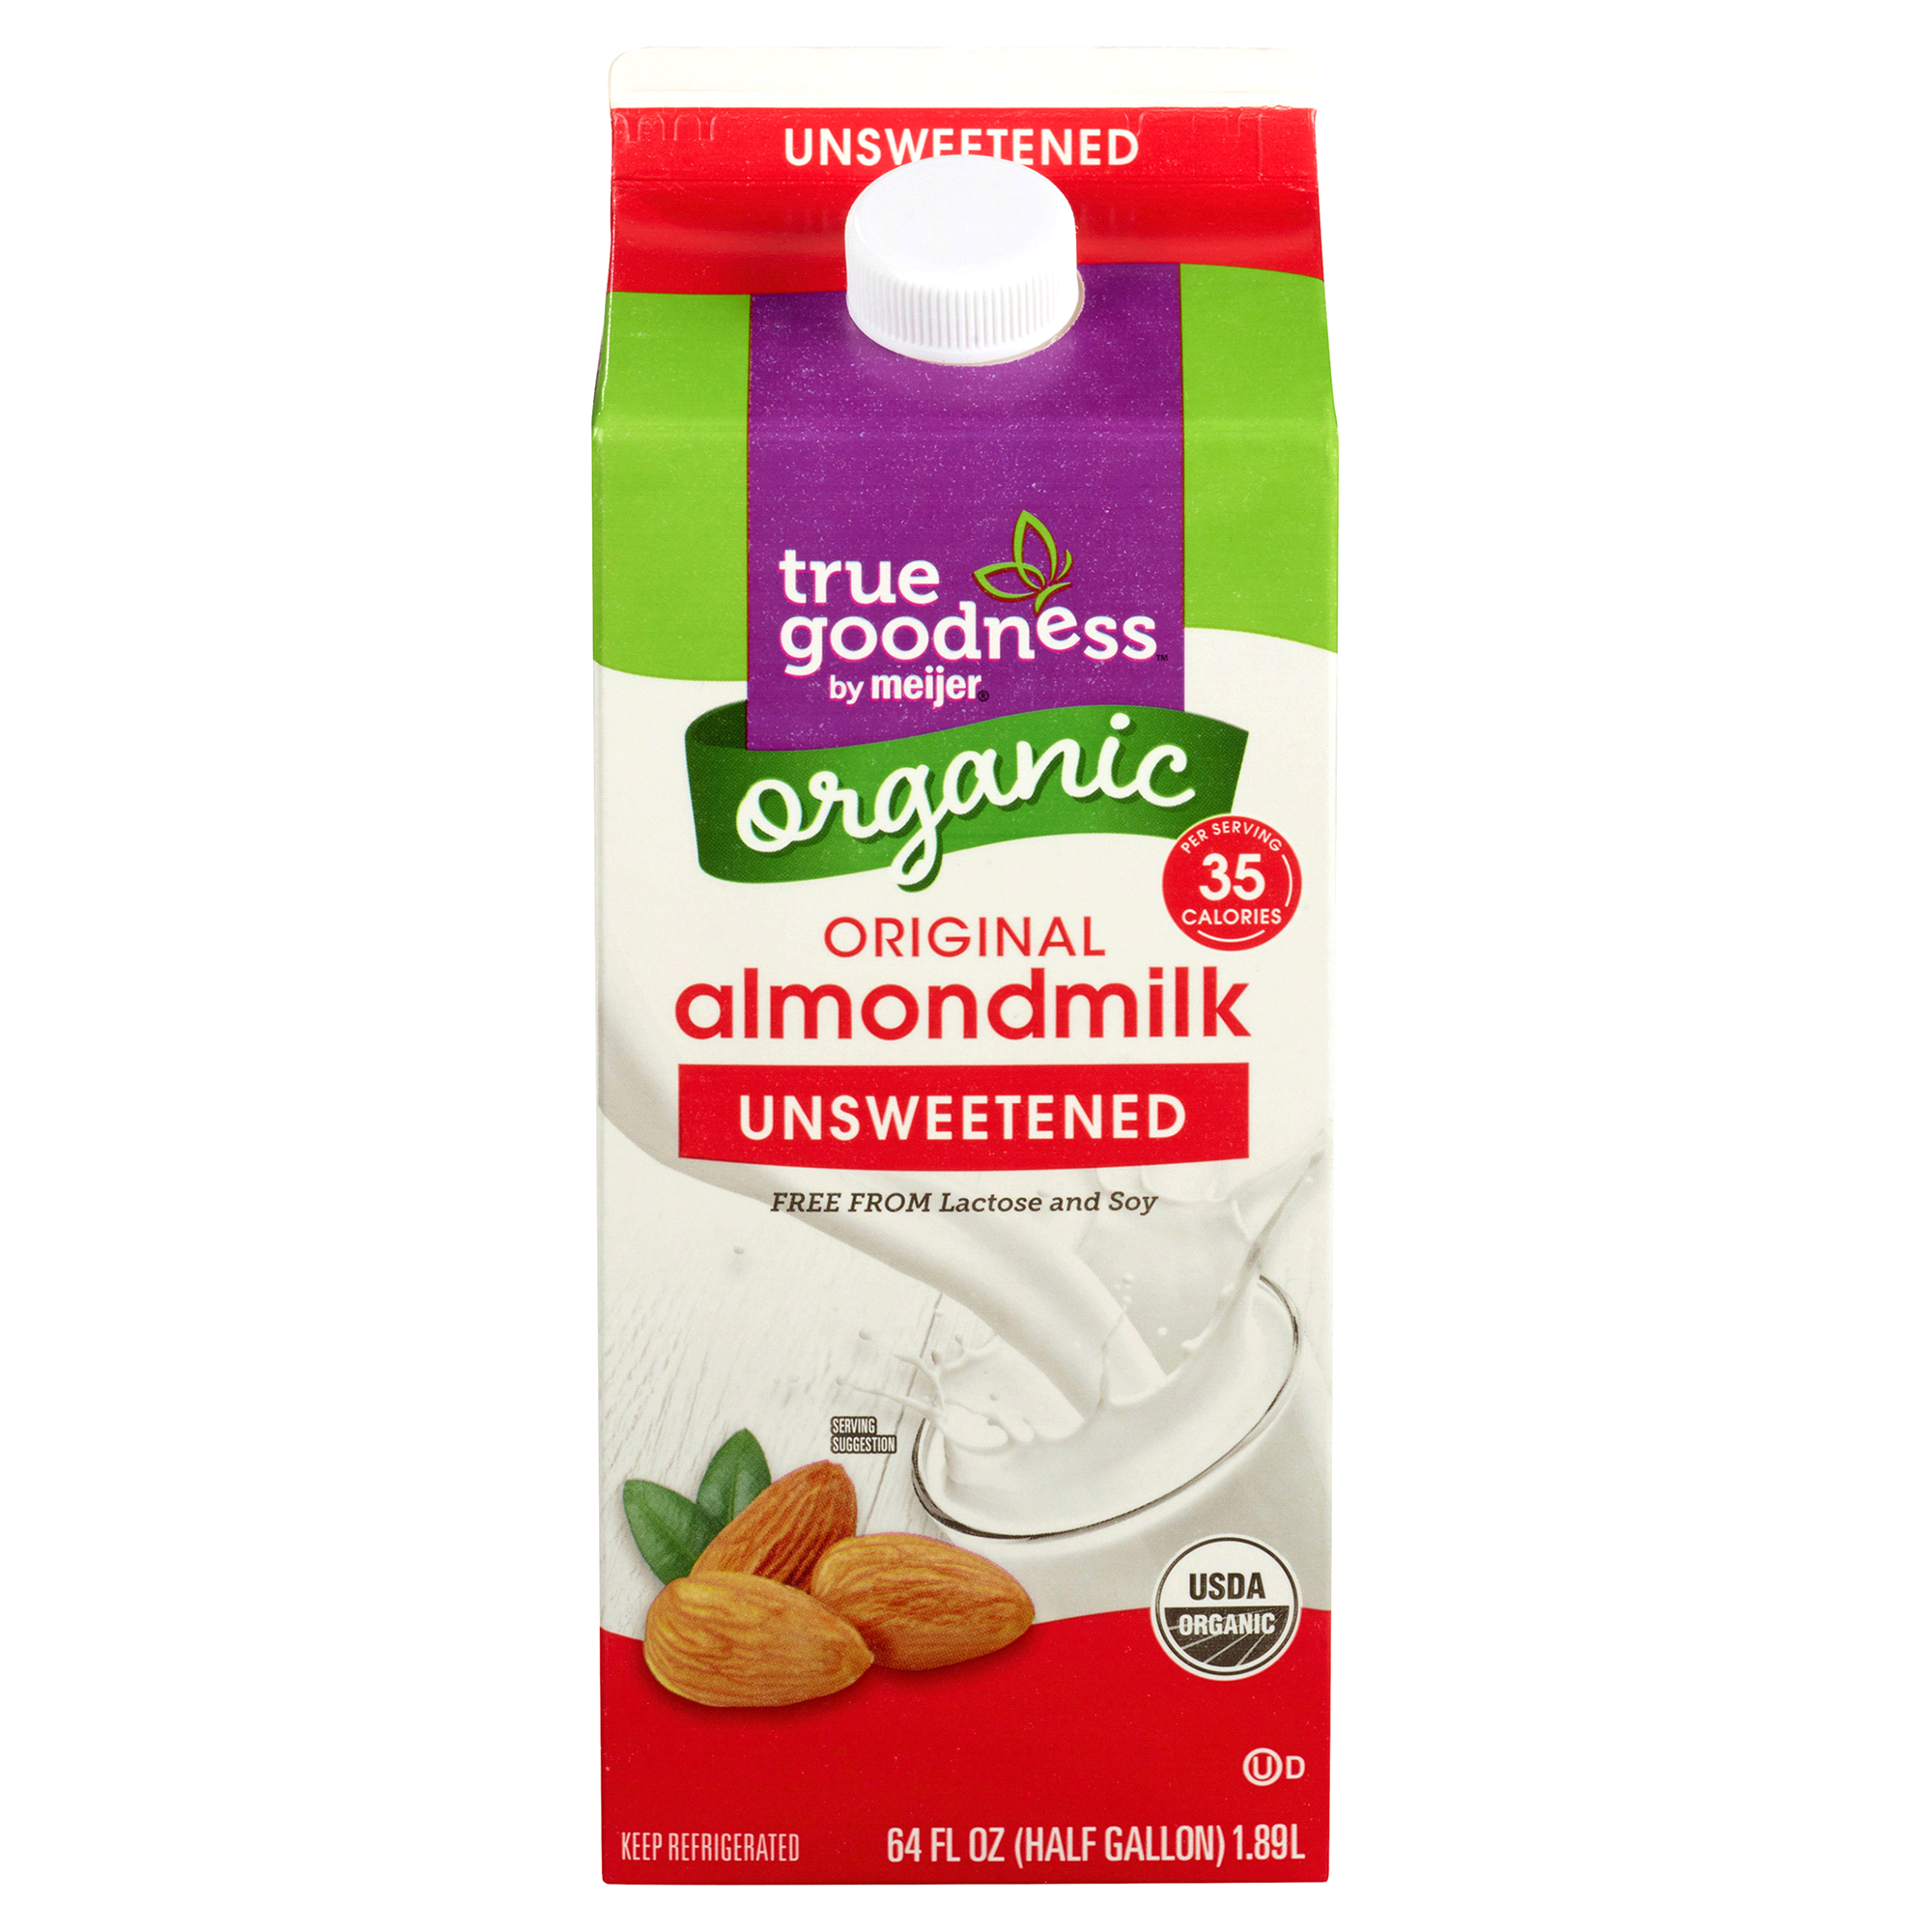 True Goodness Organic AlmondMilk 64 fl oz